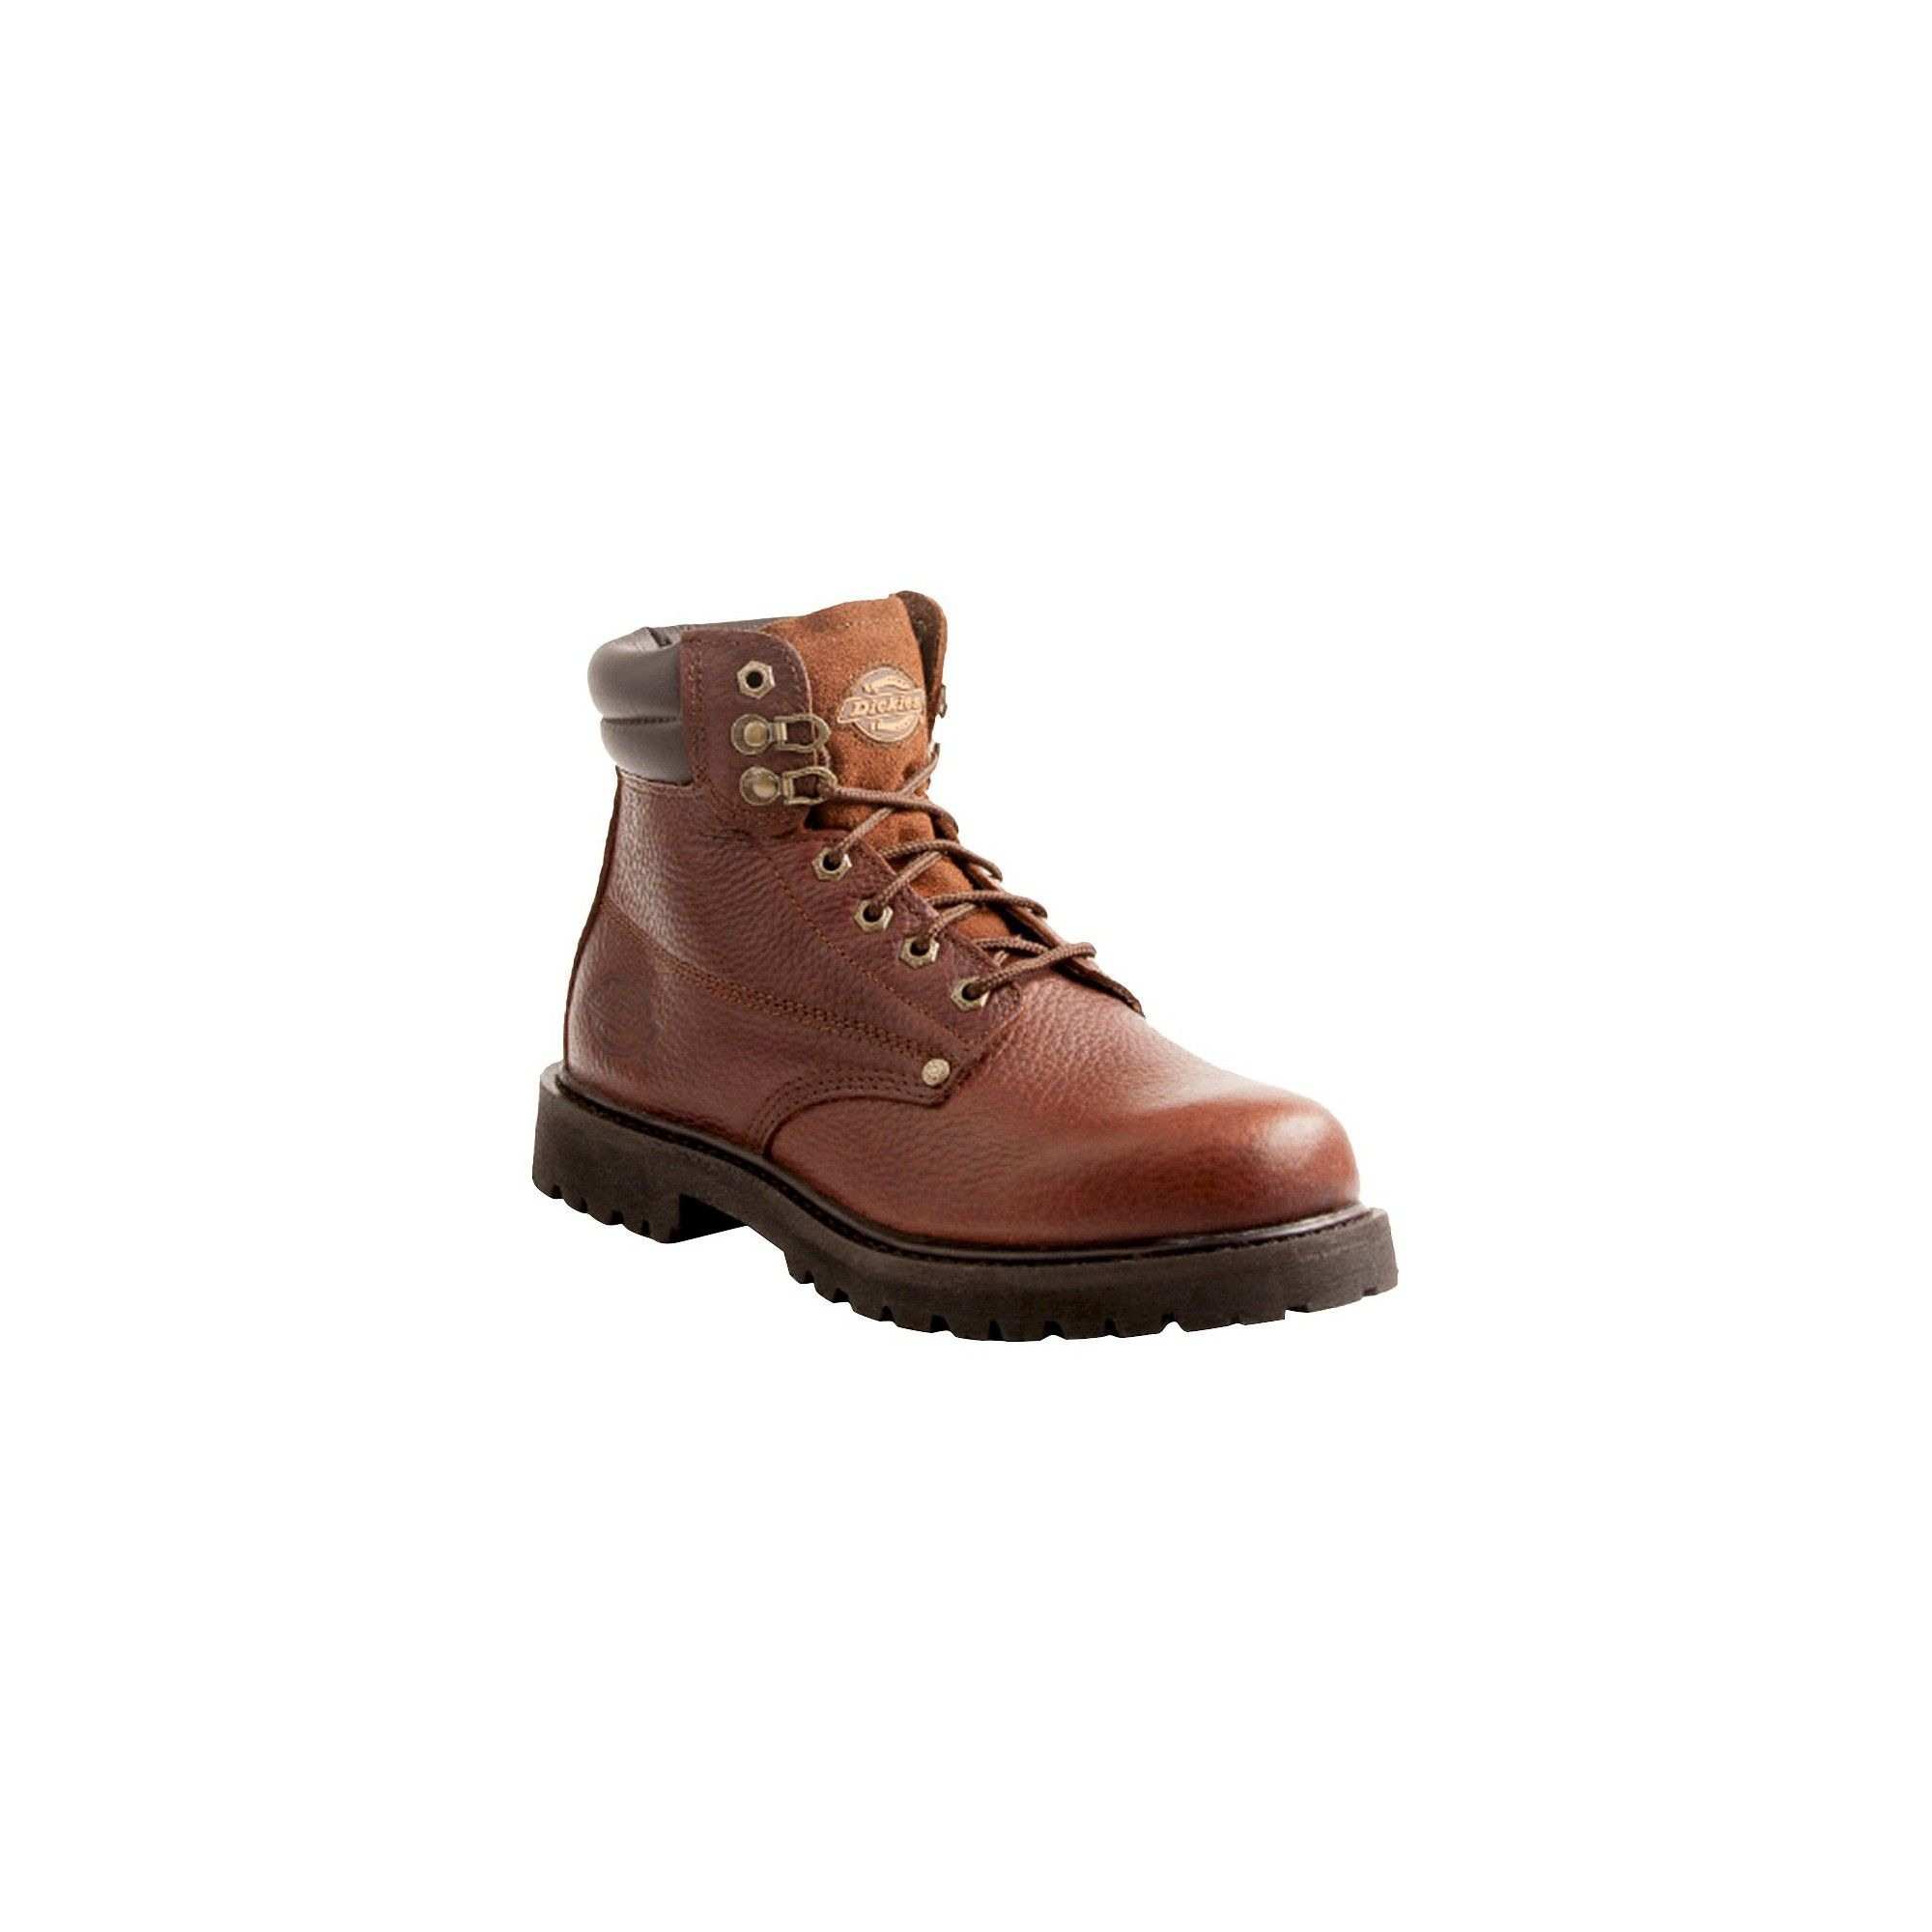 495ba739f83 Men's Dickies Raider Soft Toe Work Boot - Brown 8.5   Products ...